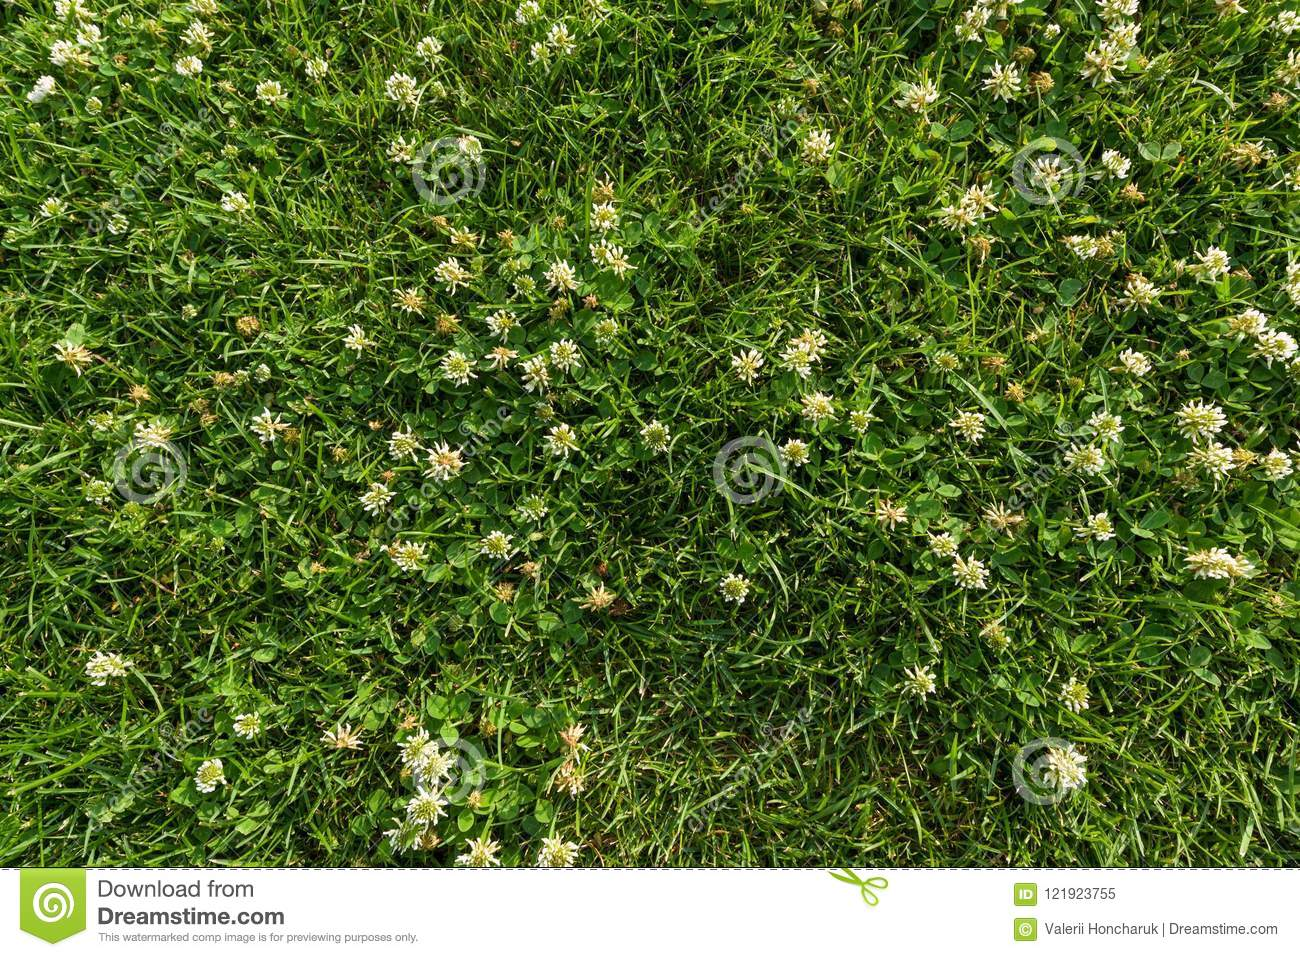 Abstract texture background, natural bright green grass with white flowers of clover, close-up lawn carpet, top view.